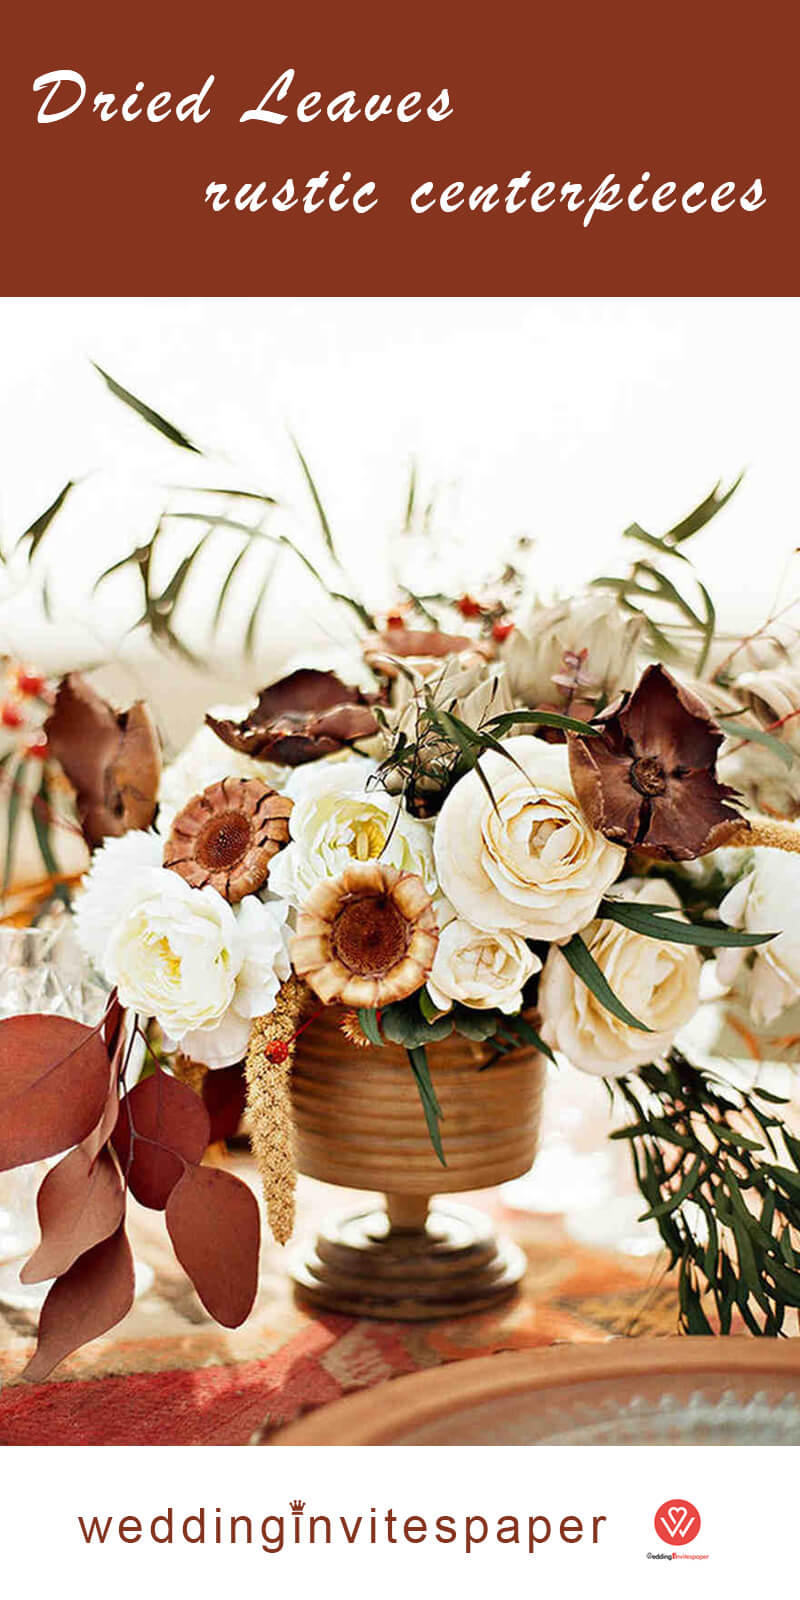 15 Dried Leaves rustic centerpieces.jpg